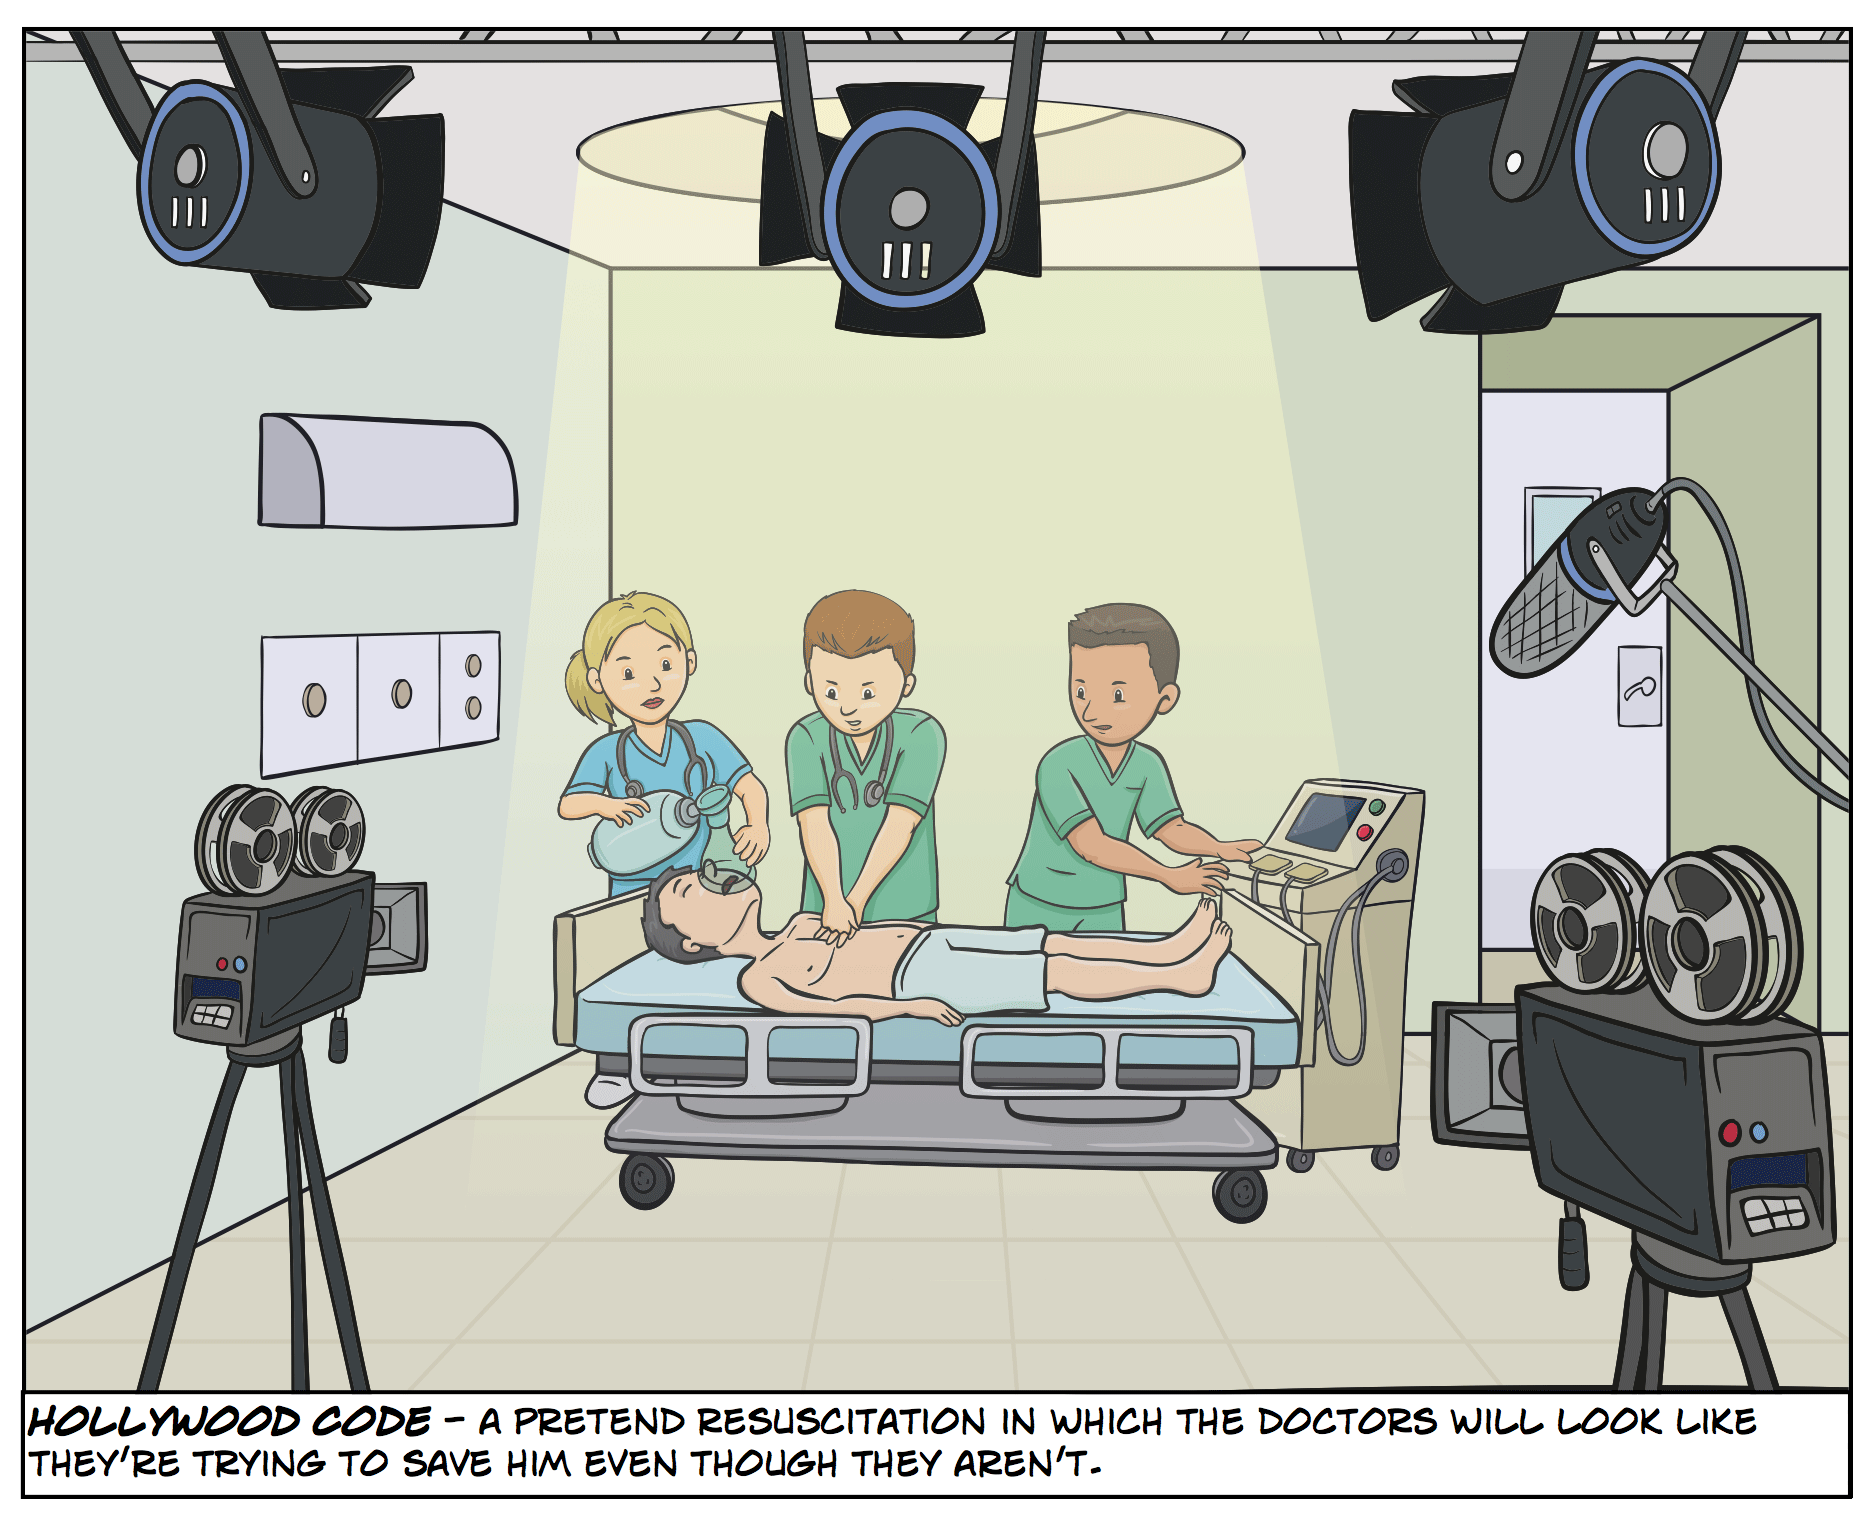 Hollywood Code - a pretend resuscitation in which the doctors will look like they're trying to save him even though they aren't.